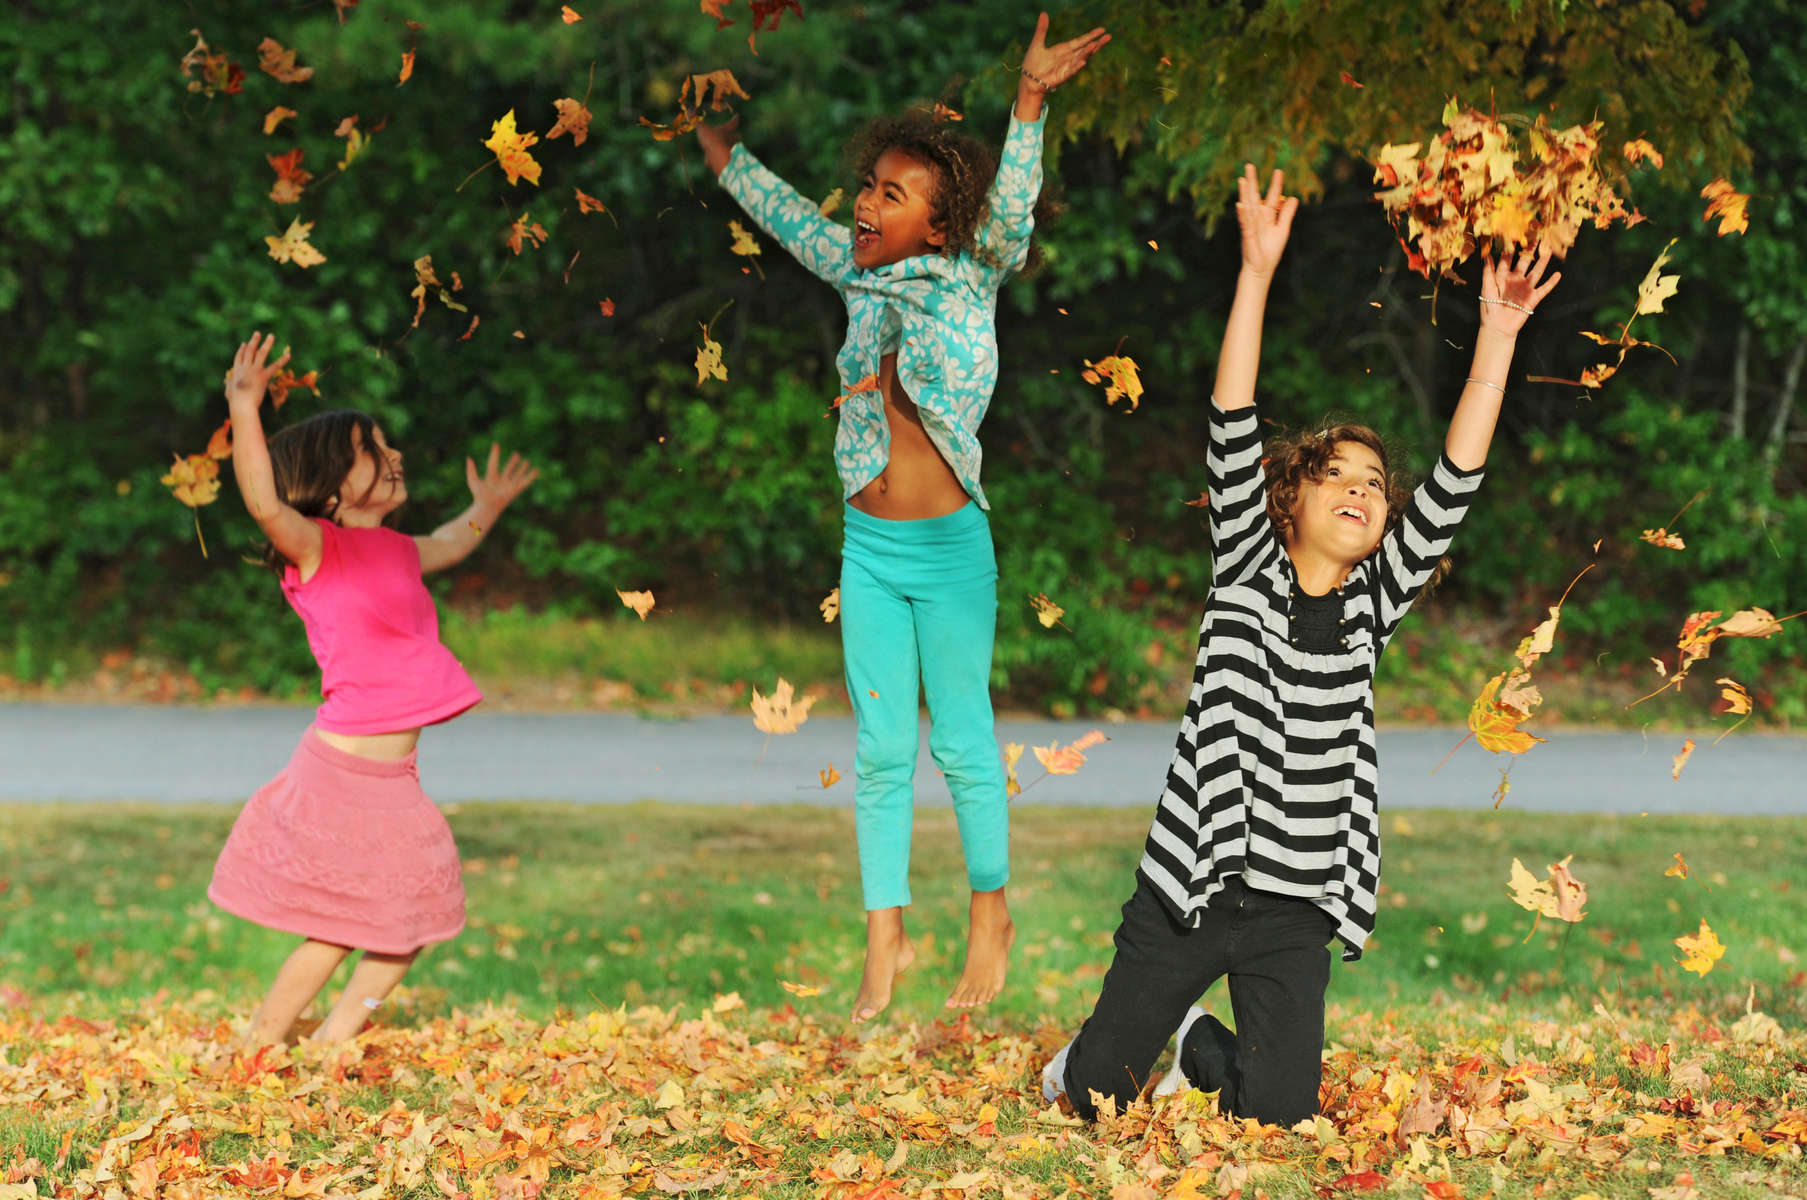 From left, Layla Vickers, 5, Amalia Thompson, 5, and Olivia Thompson, 8, all of West Barnstable blissfully toss leaves in the air in front of West Barnstable Elementary School on the second day of autumn.